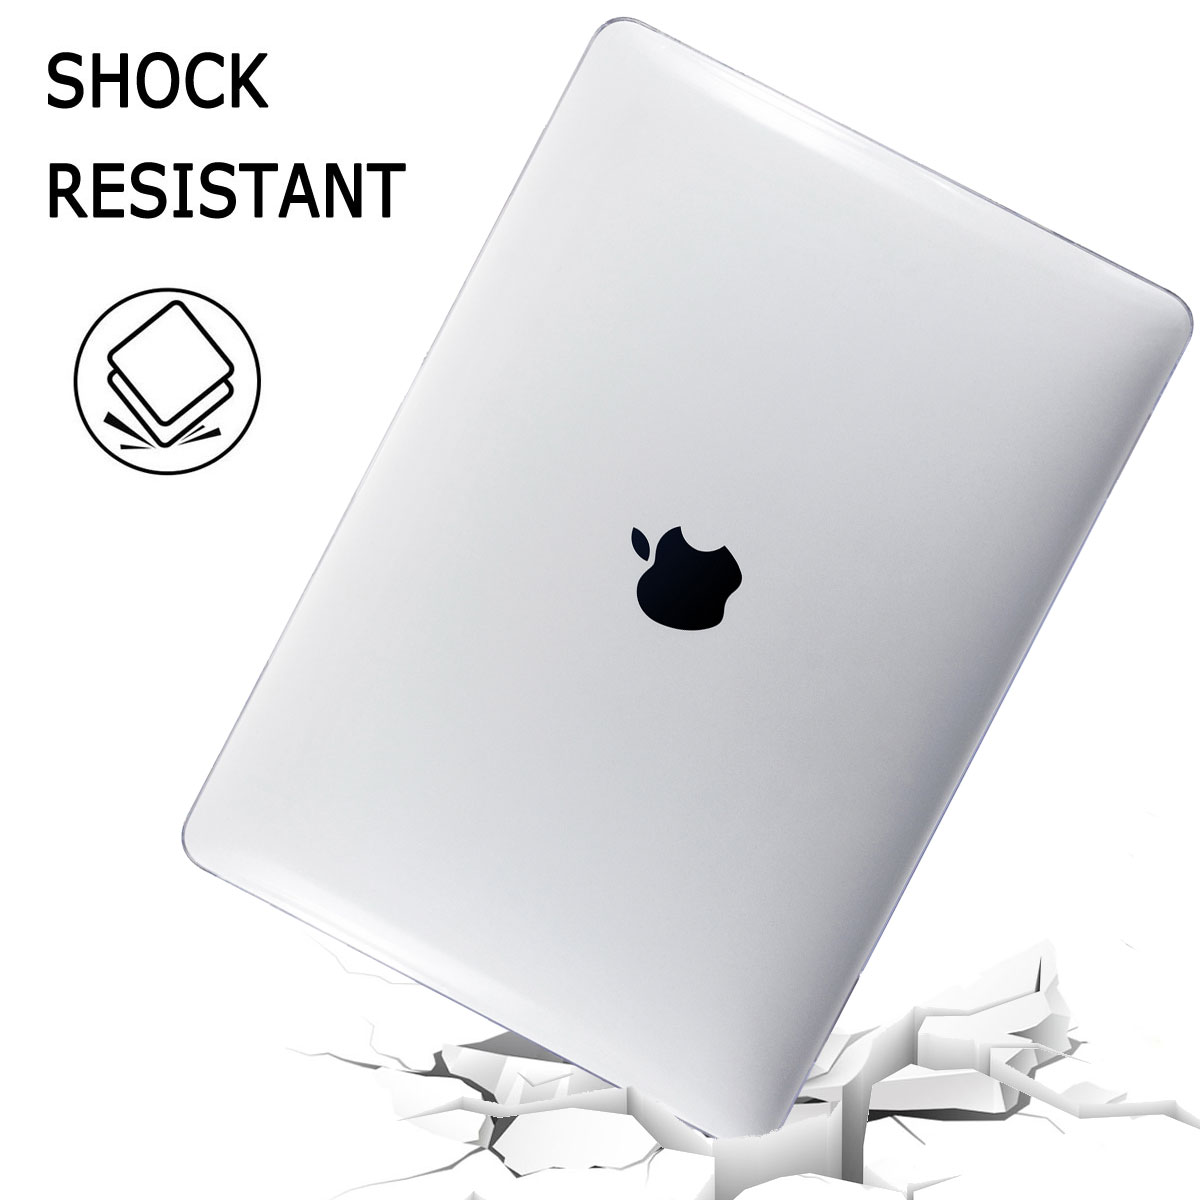 Shockproof-Laptop-Hard-Case-Keyboard-Cover-For-Macbook-Air-13-034-Inch-2018-A1932 thumbnail 47